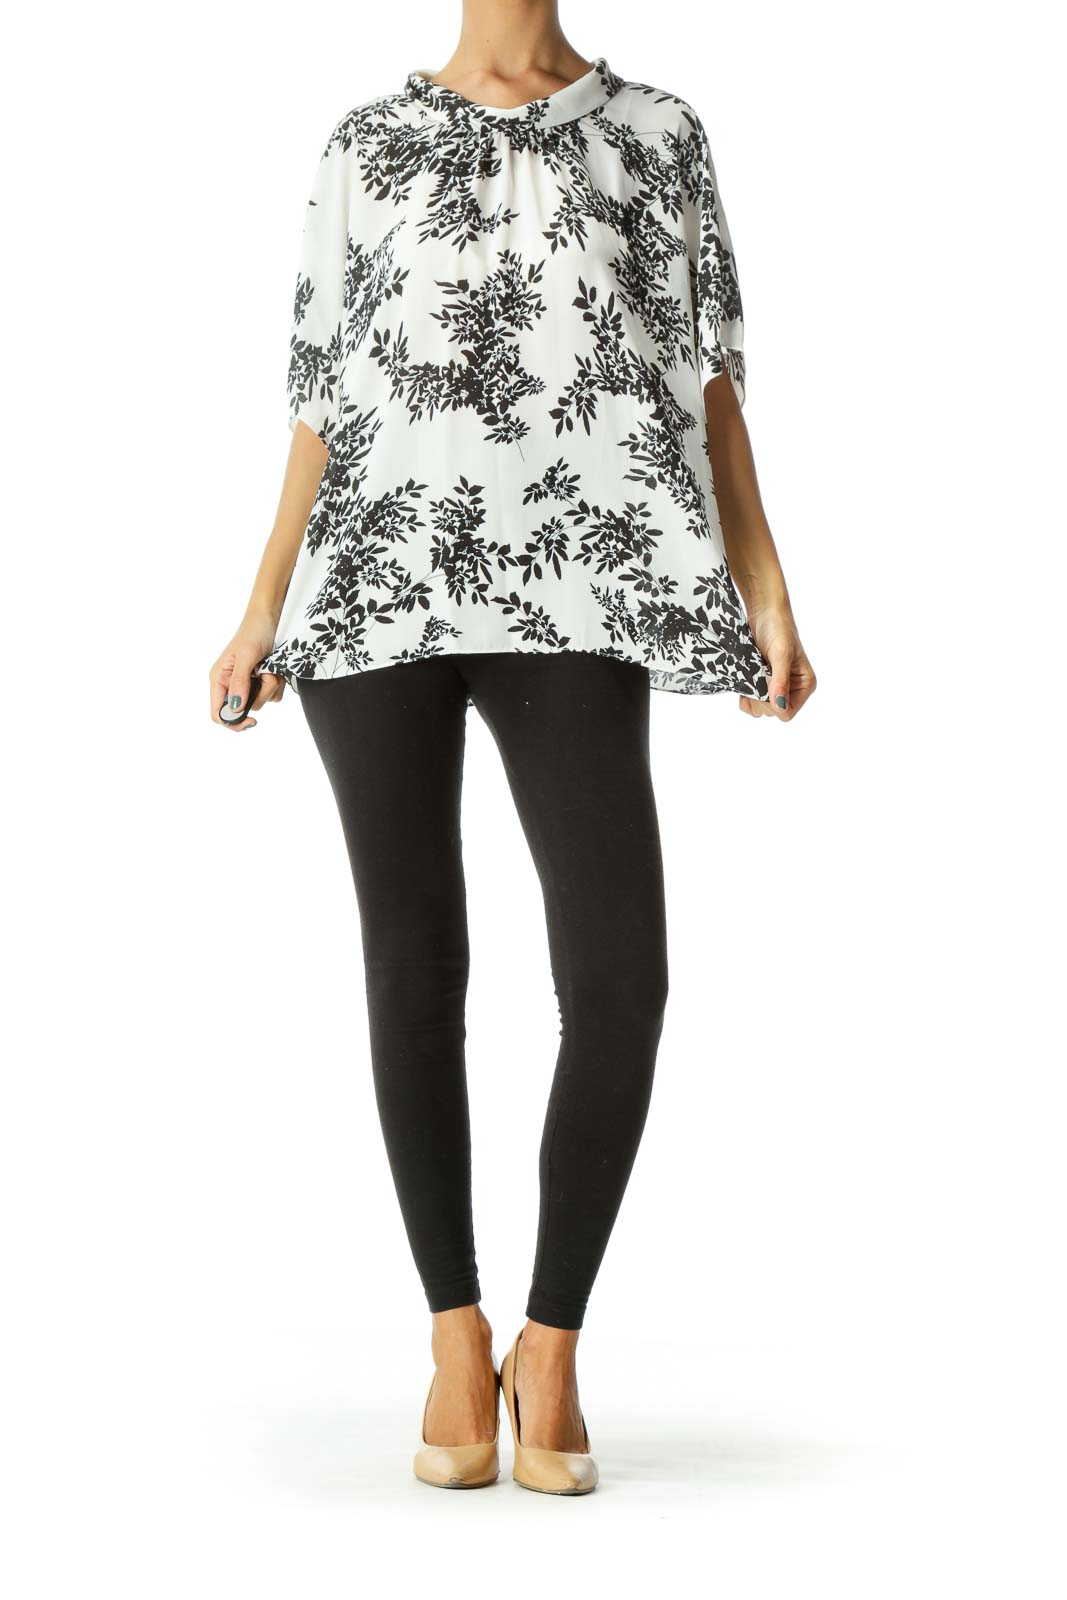 Off-White Black Leaves Print Flared Sleeves Blouse